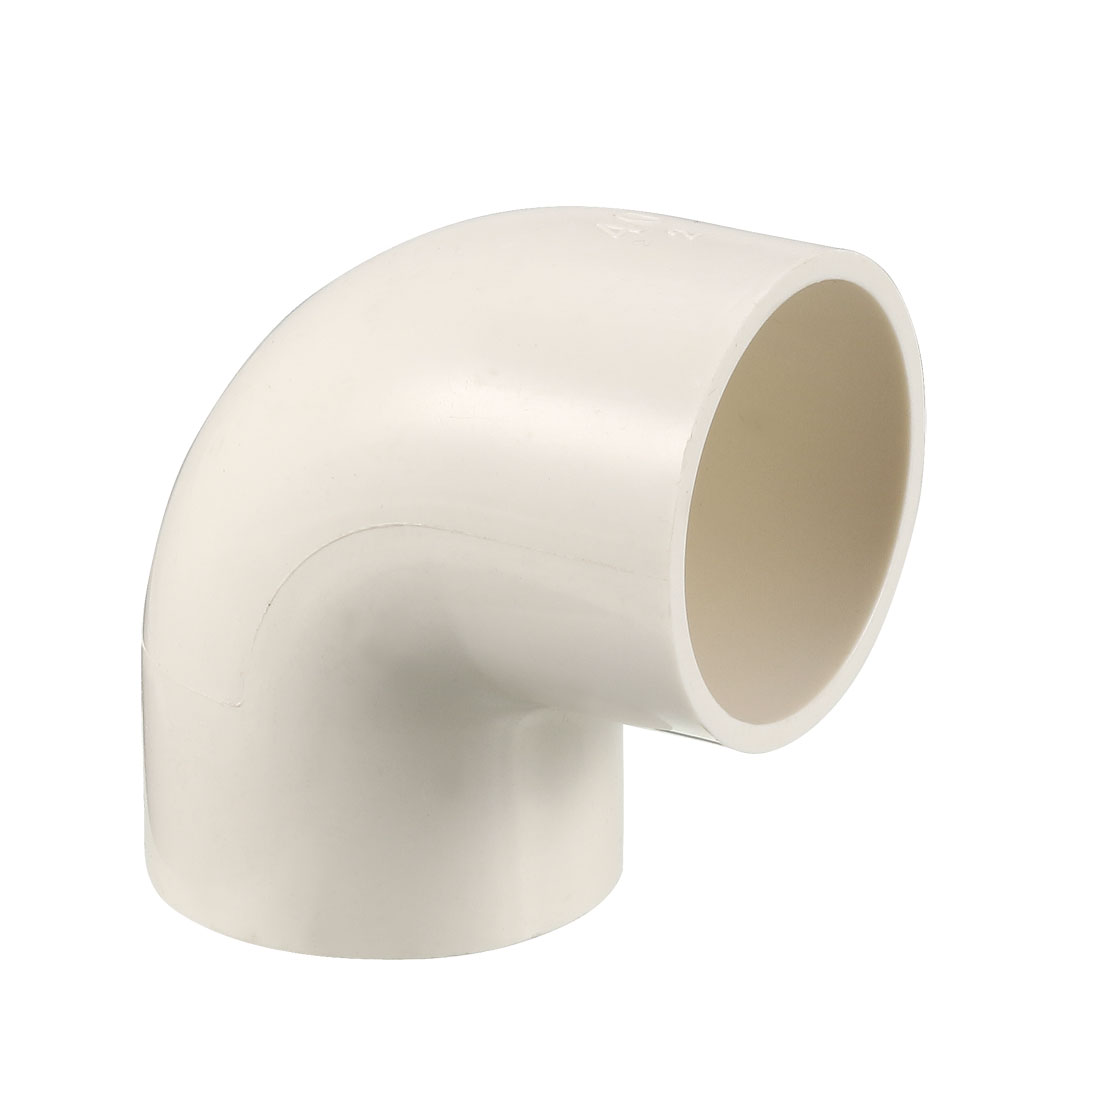 PVC Pipe Fitting 40mm Slip Socket 90 Degree Elbow Coupling Connector White 10Pcs